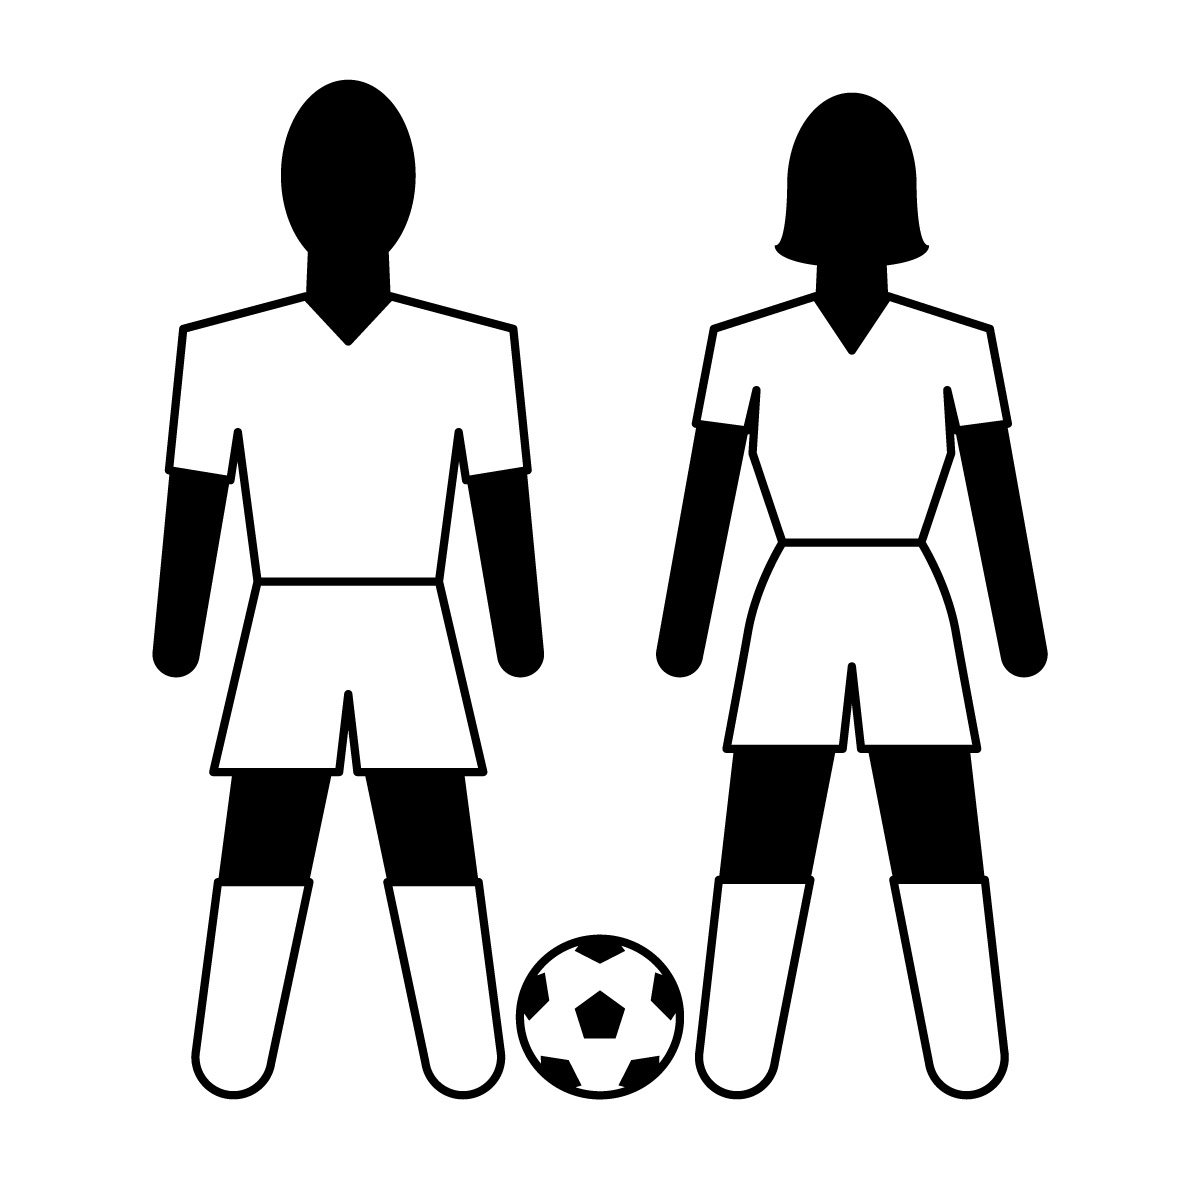 Free Clip Art Images Icons Clip Art Athletes Soccer Bw Abcteach Image